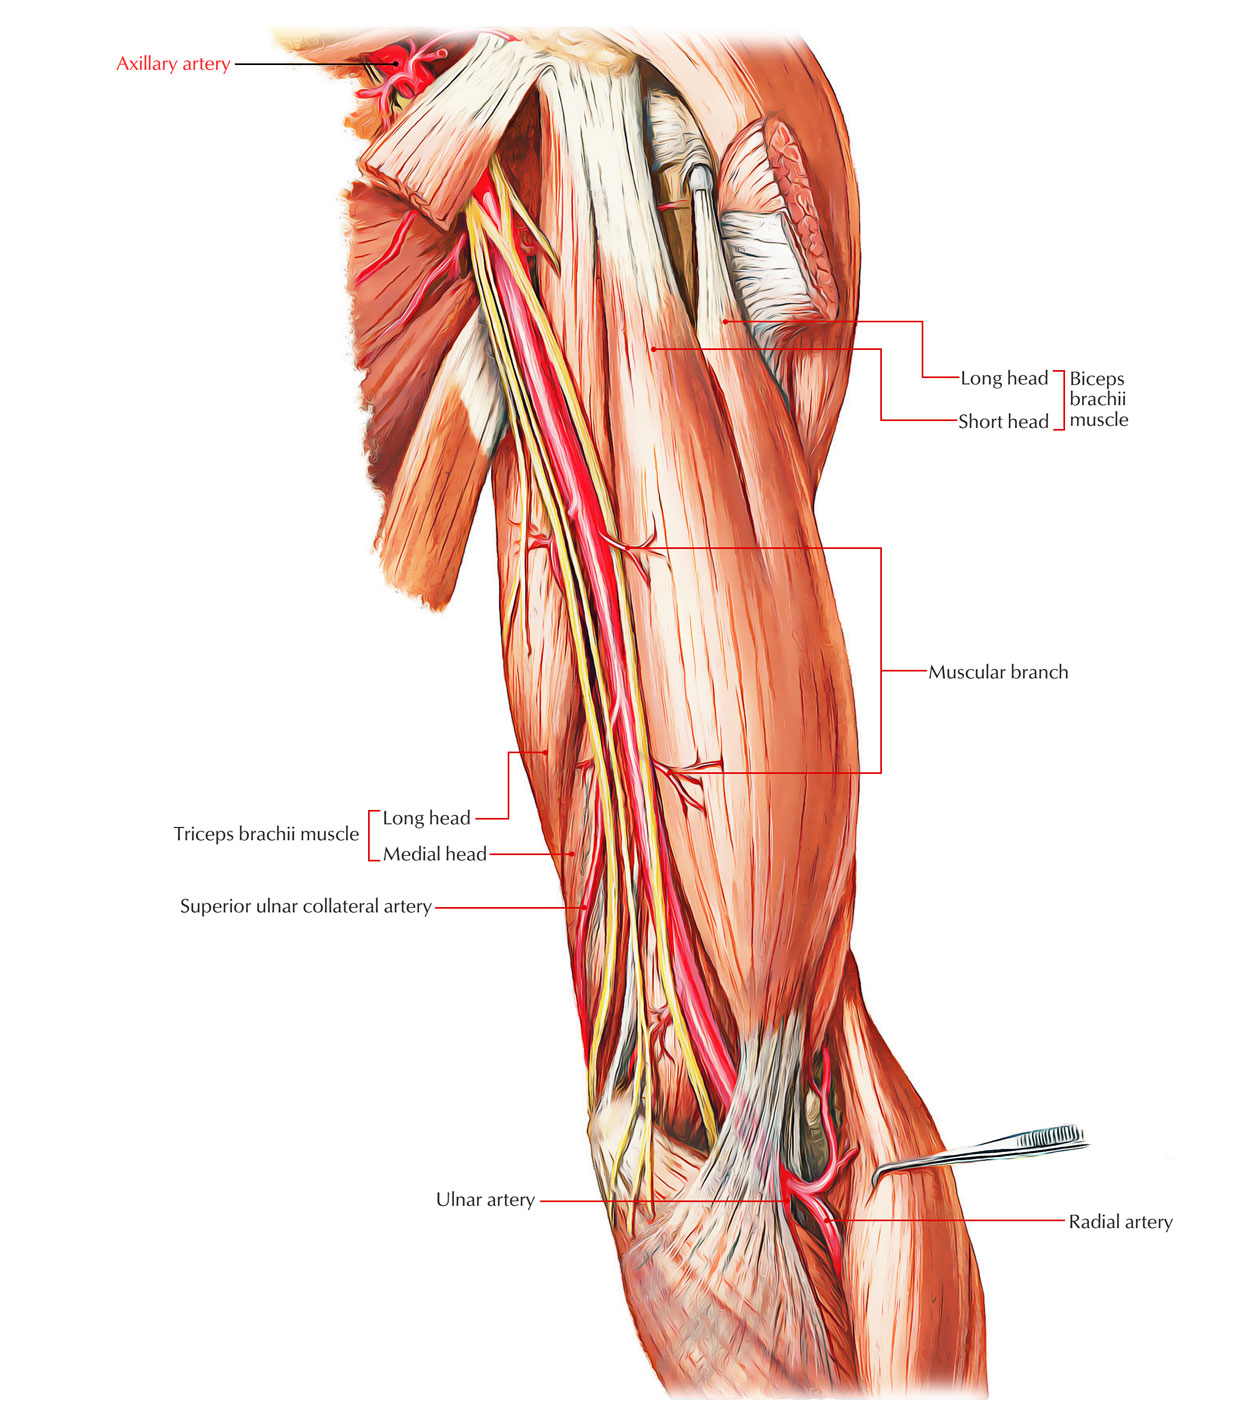 Arteries of the Upper Limb: Axillary Artery